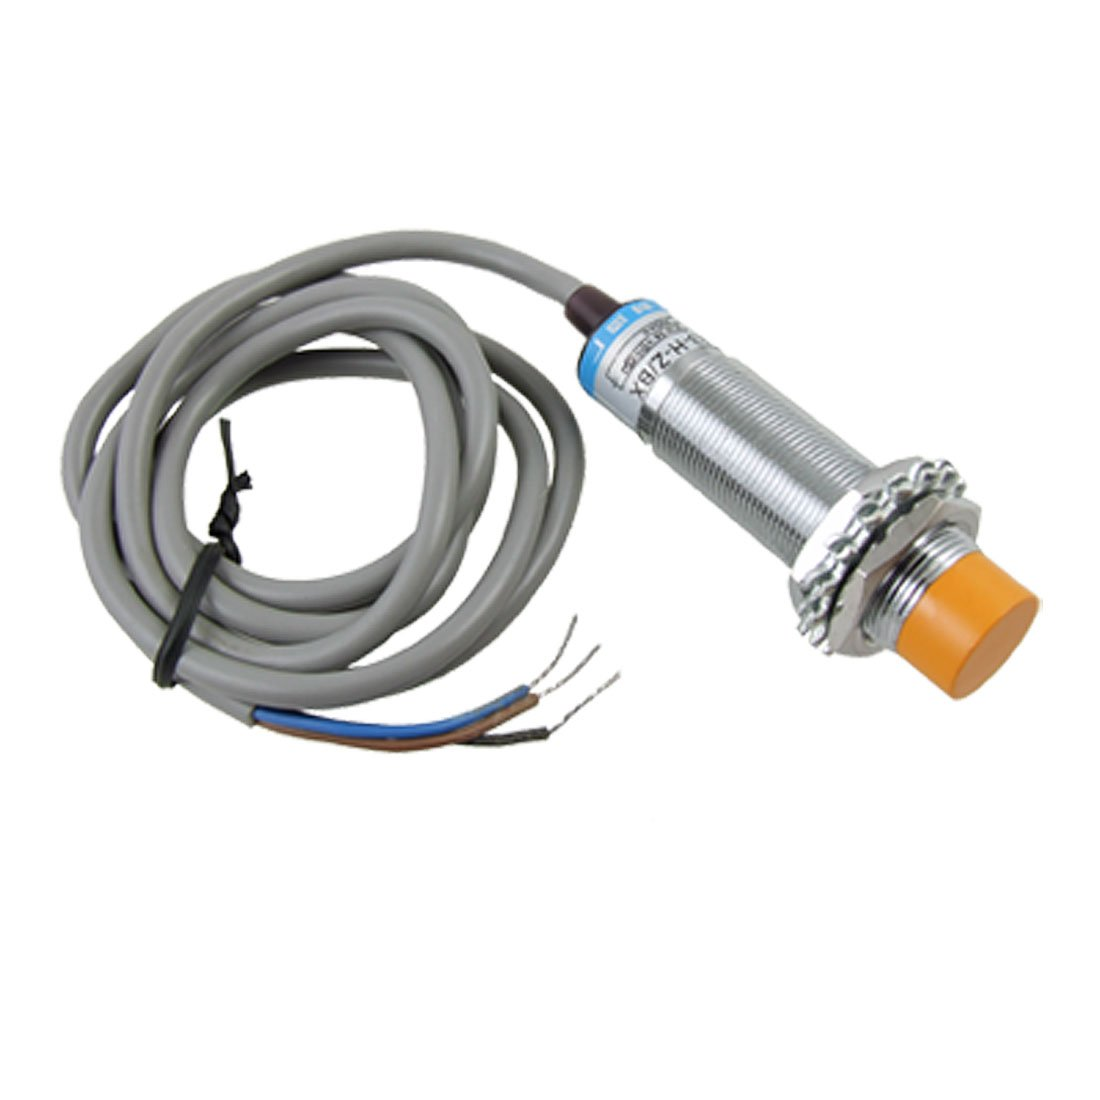 все цены на High Quality LJC18A3-H-Z/BX 1-10mm Capacitance Proximity Sensor Switch NPN NO DC 6-36V 300mA онлайн